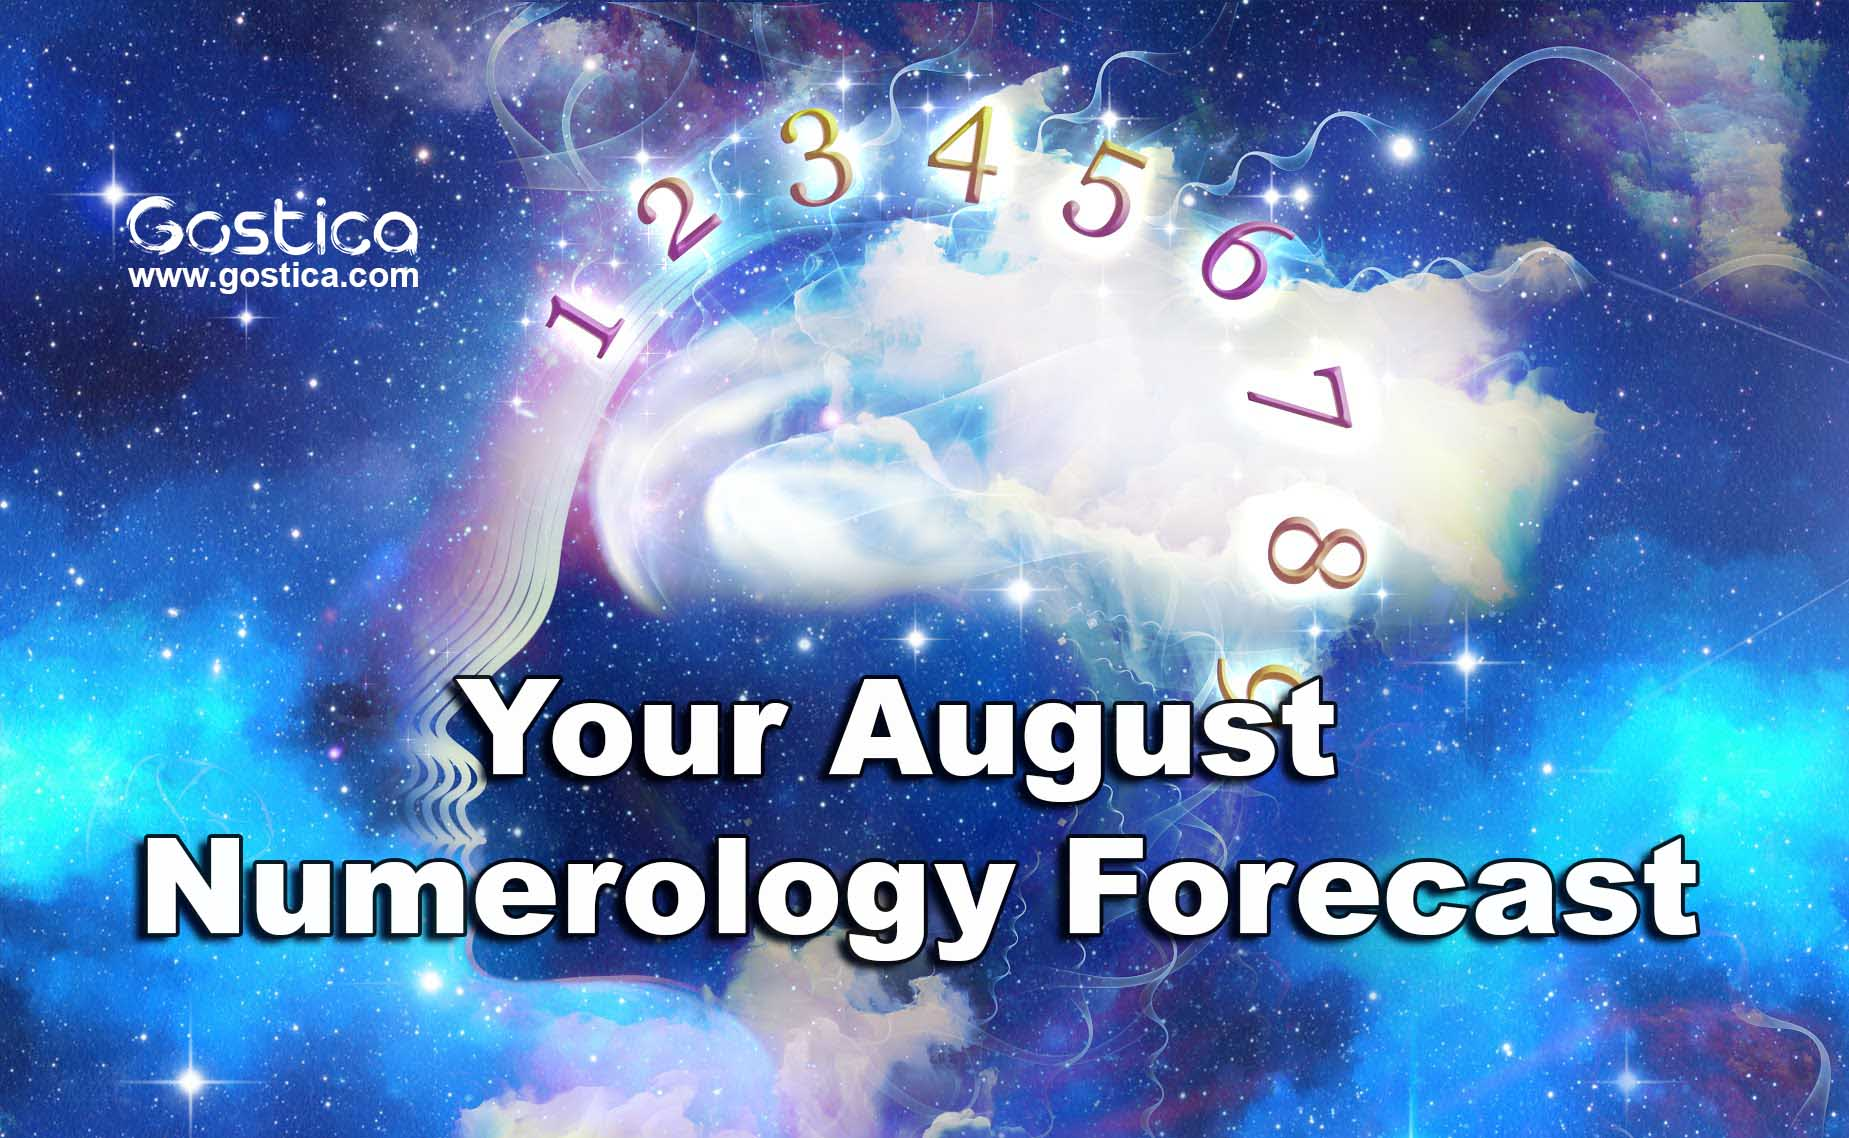 Your-August-Numerology-Forecast.jpg